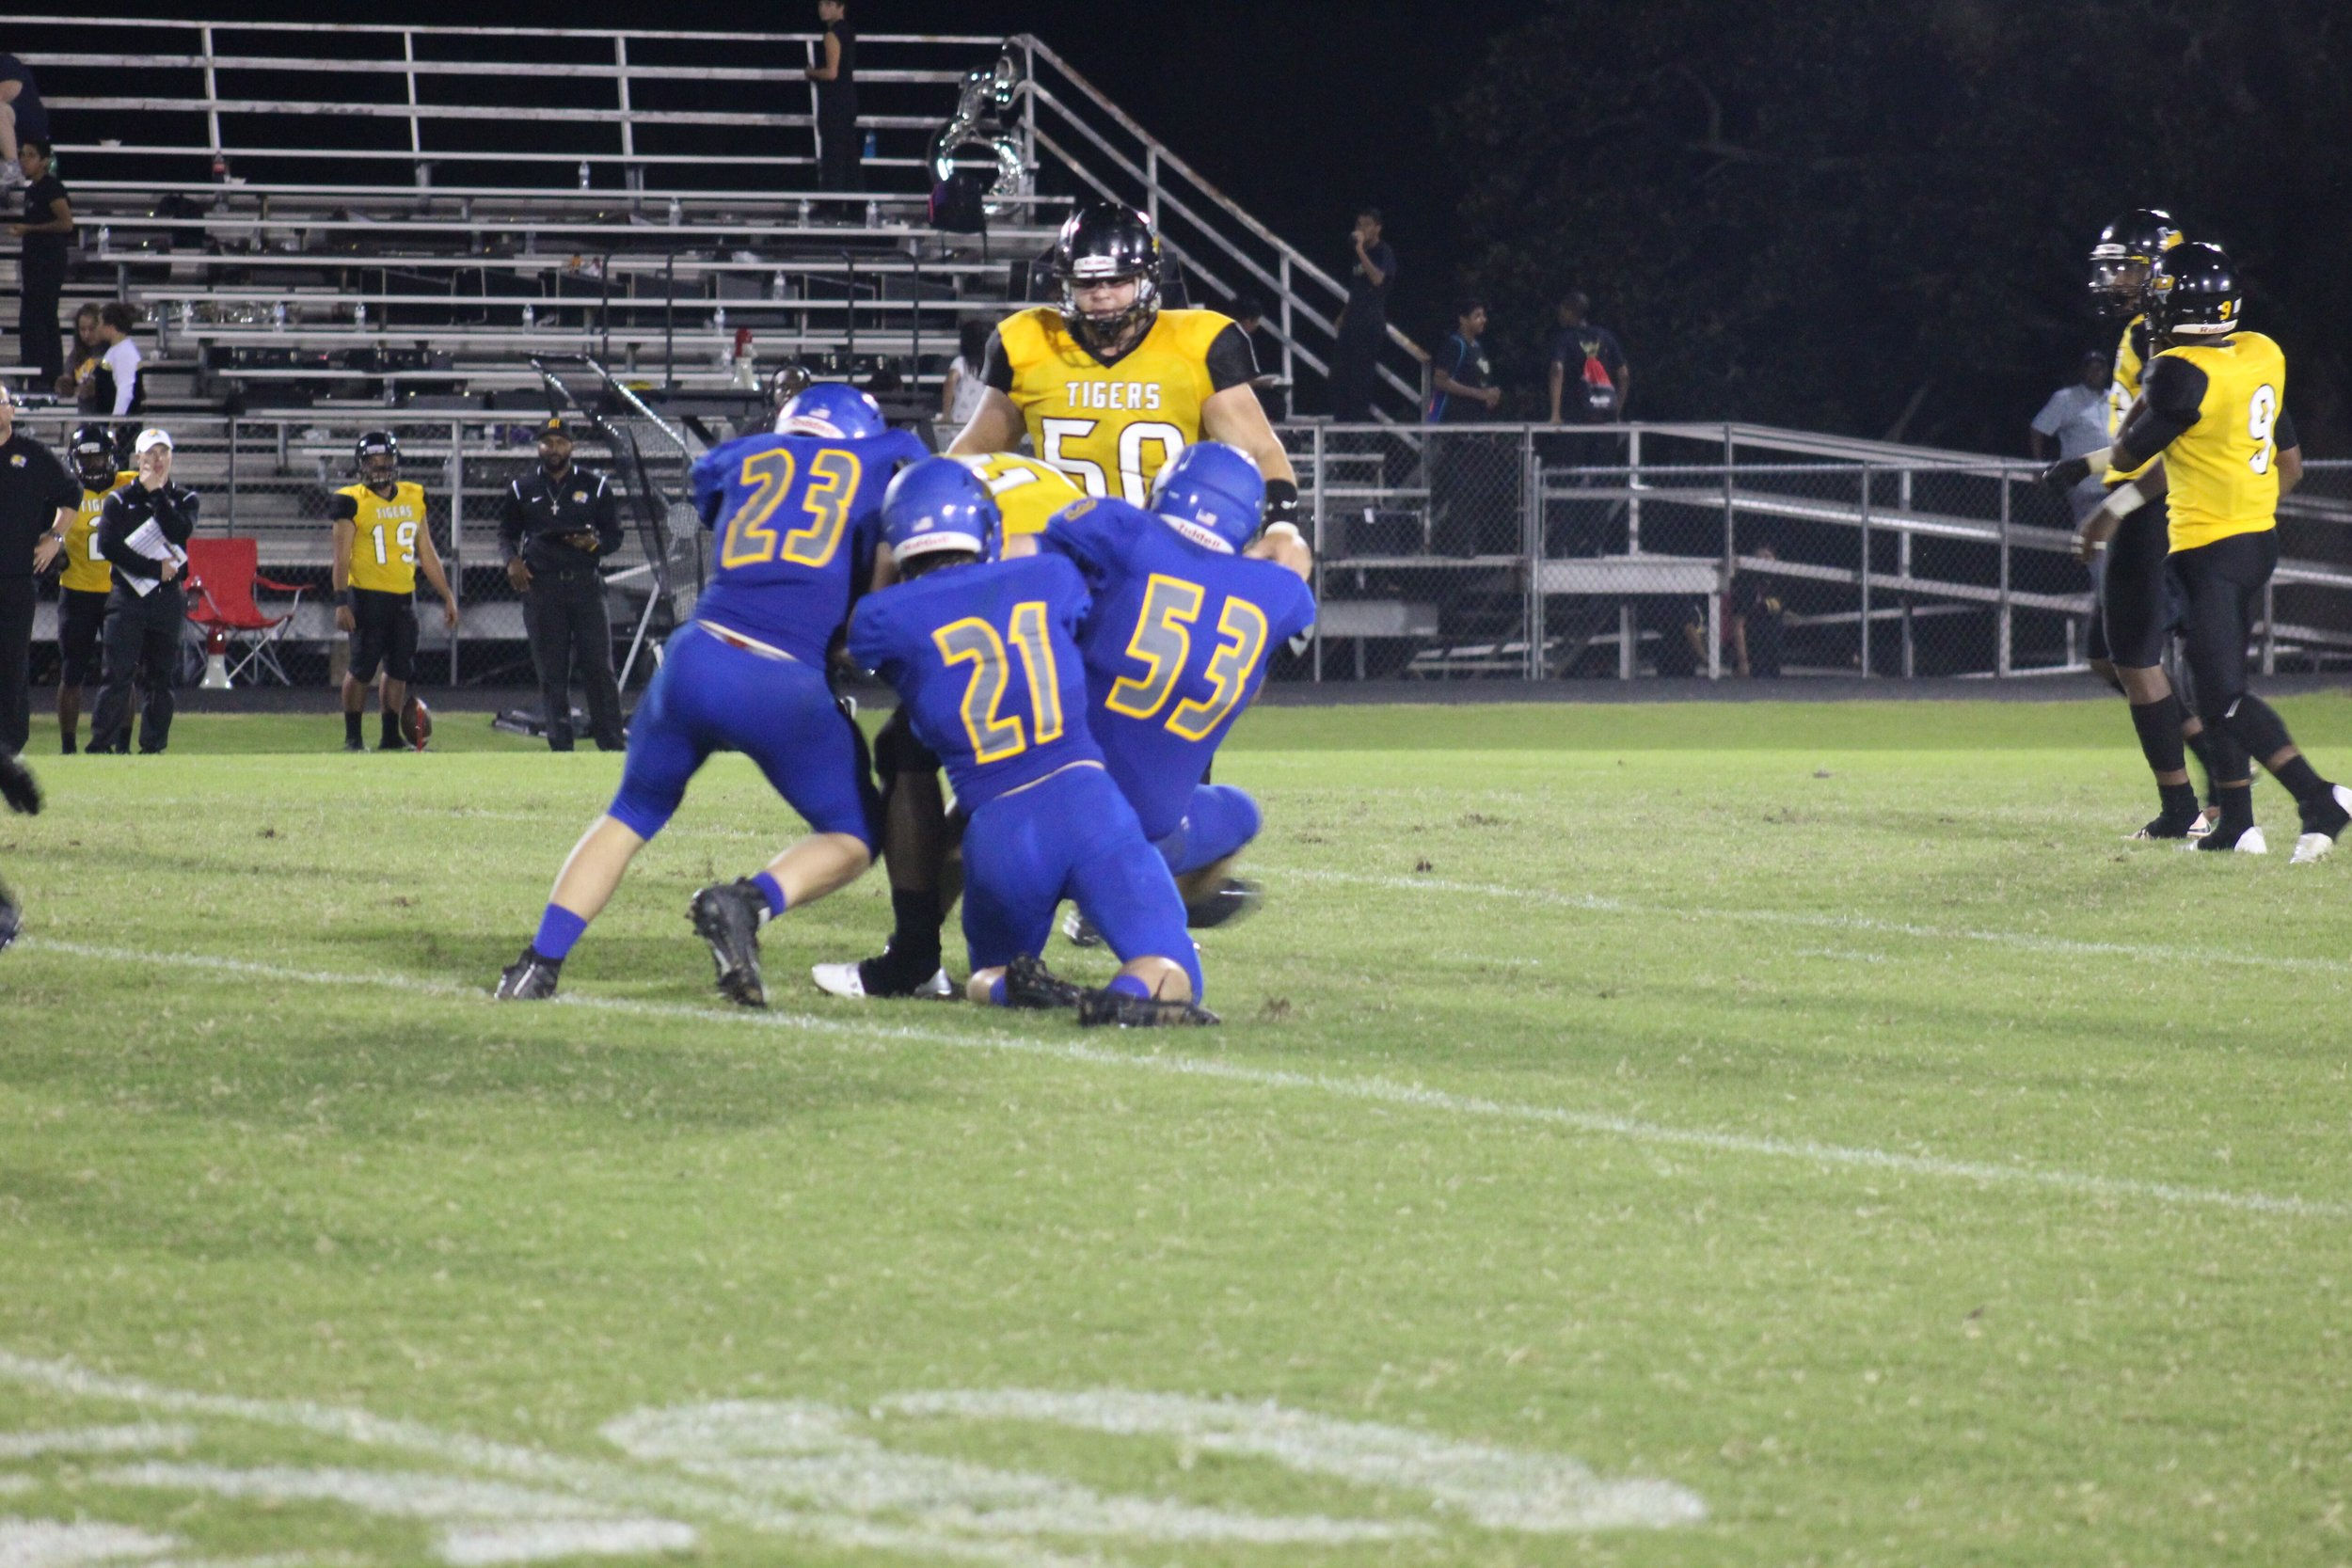 (Photo by Adam Routon) Austin Exum (23), Jeremiah Guenther (21) and Hunter Moore (53) bringing down a Mt. Pleasant player Friday night.